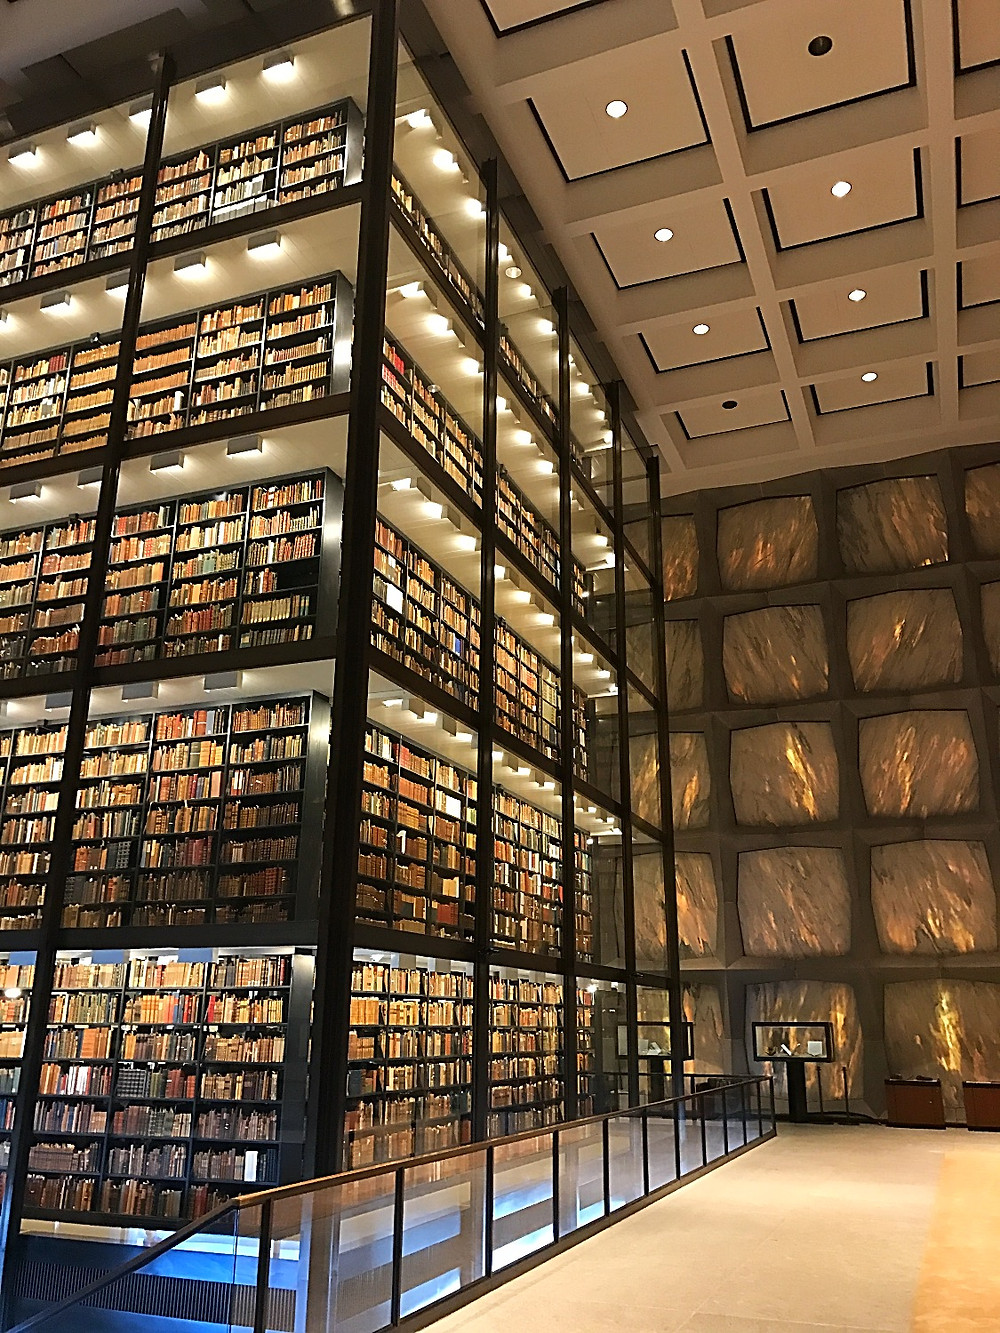 Beinecke Rare Book & Manuscript Library, Yale University, New Haven, Connecticut, USA